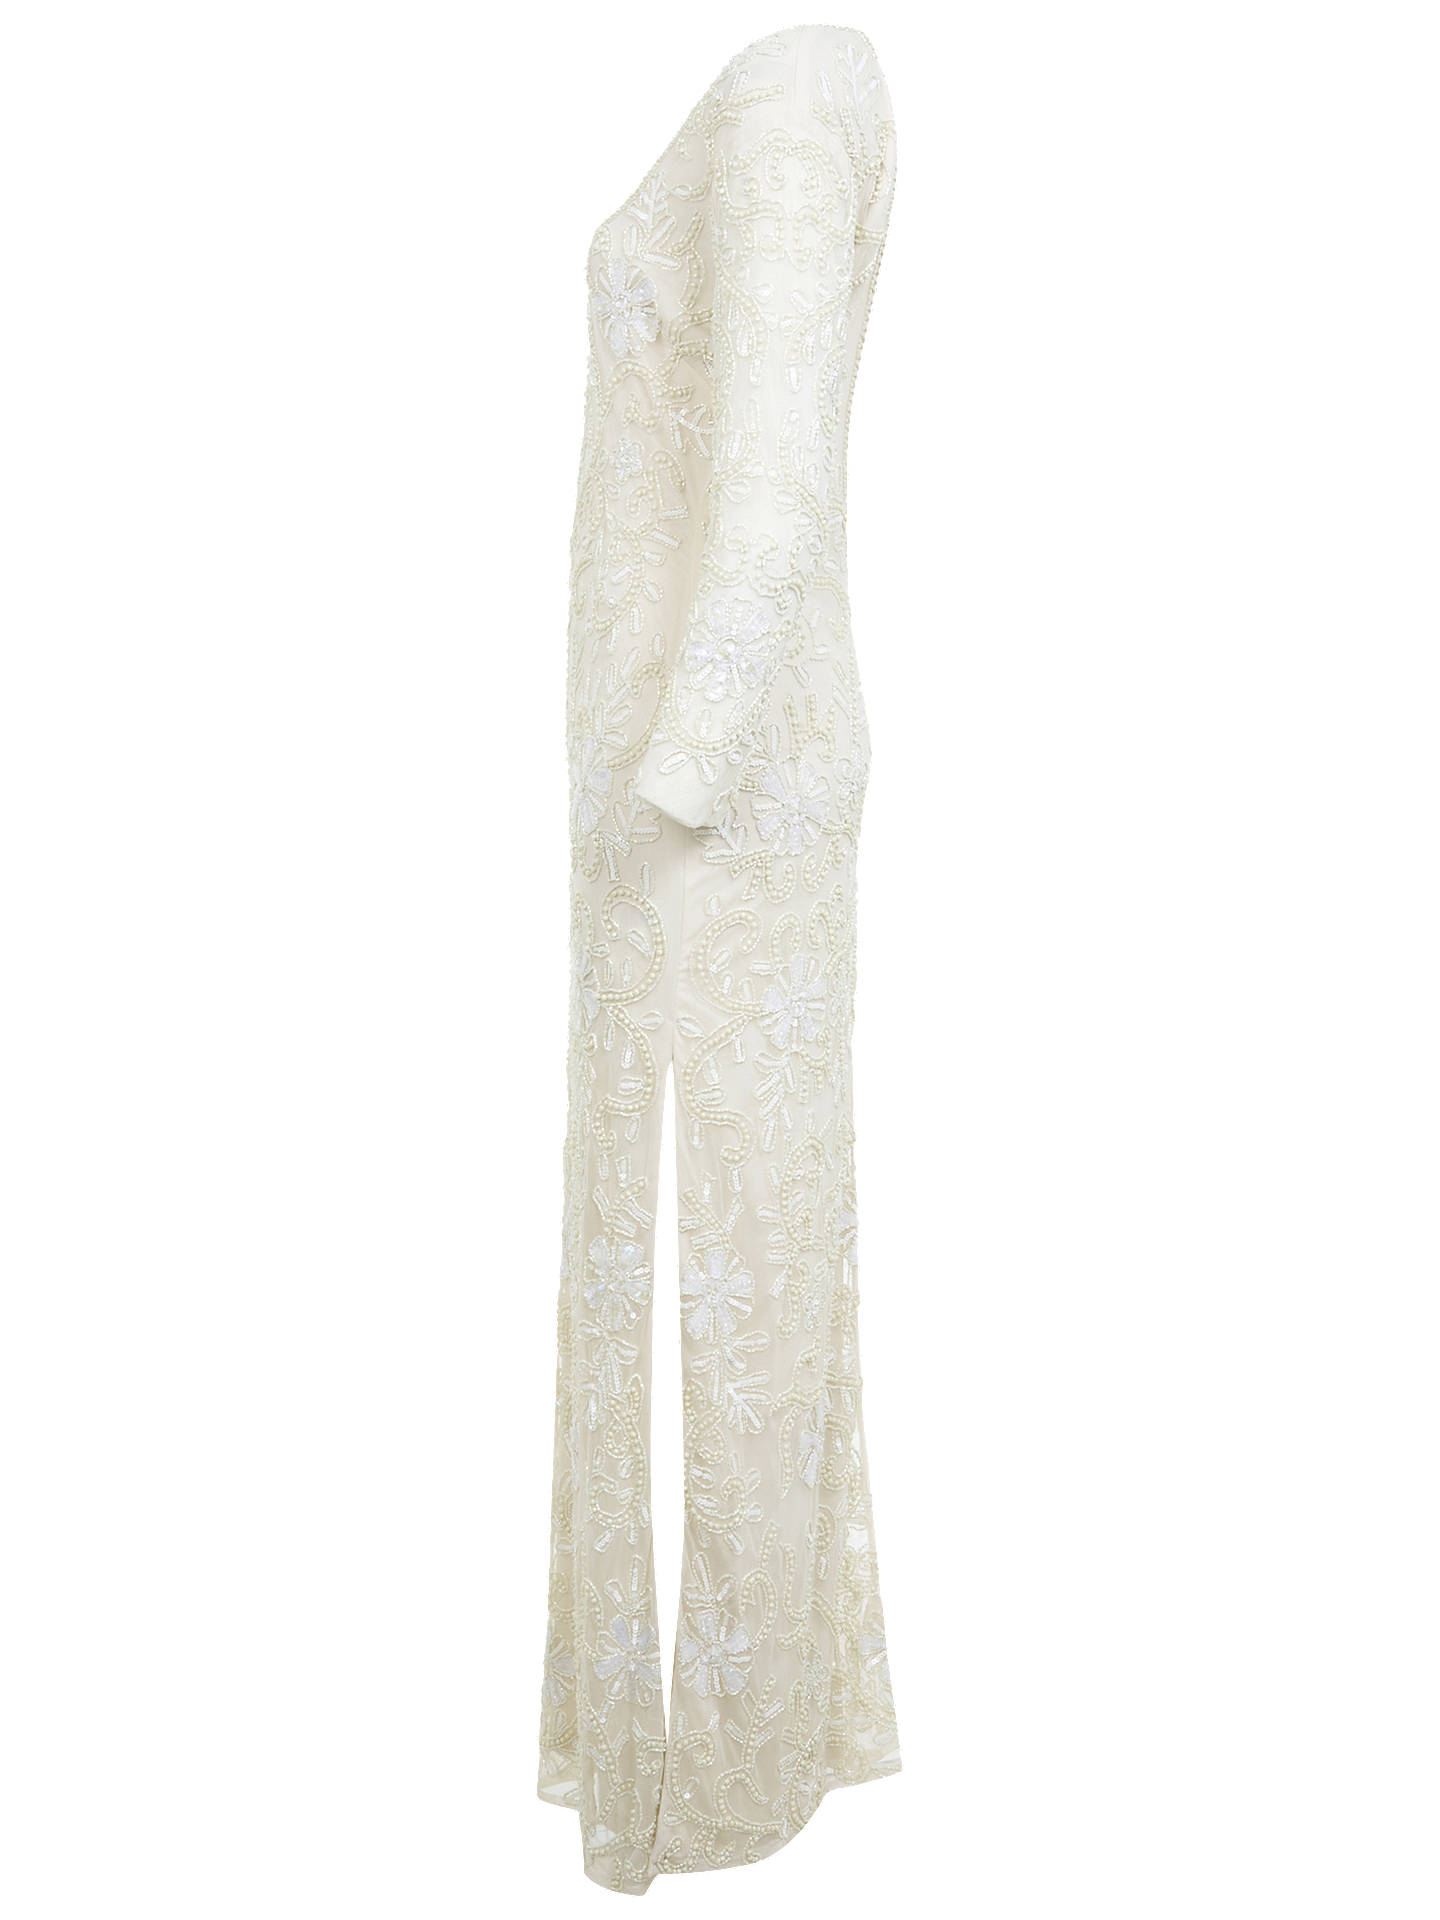 Buy Miss Selfridge Embellished Maxi Dress, Cream, 6 Online at johnlewis.com